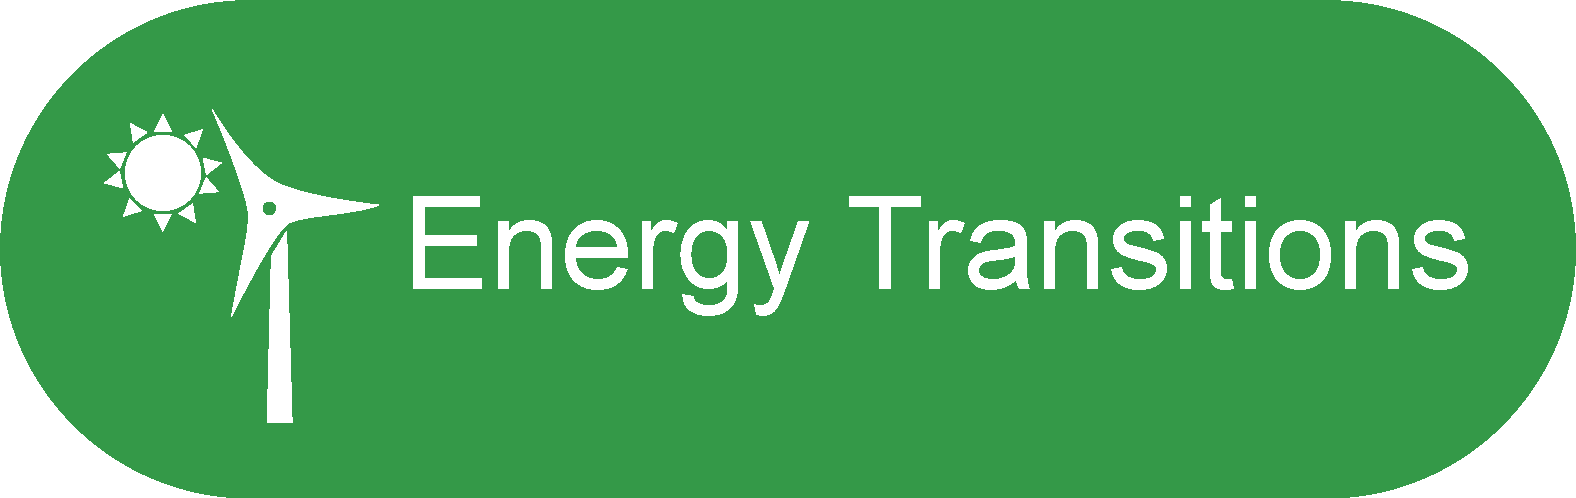 Energy Commodity Indicators – Energy Transitions